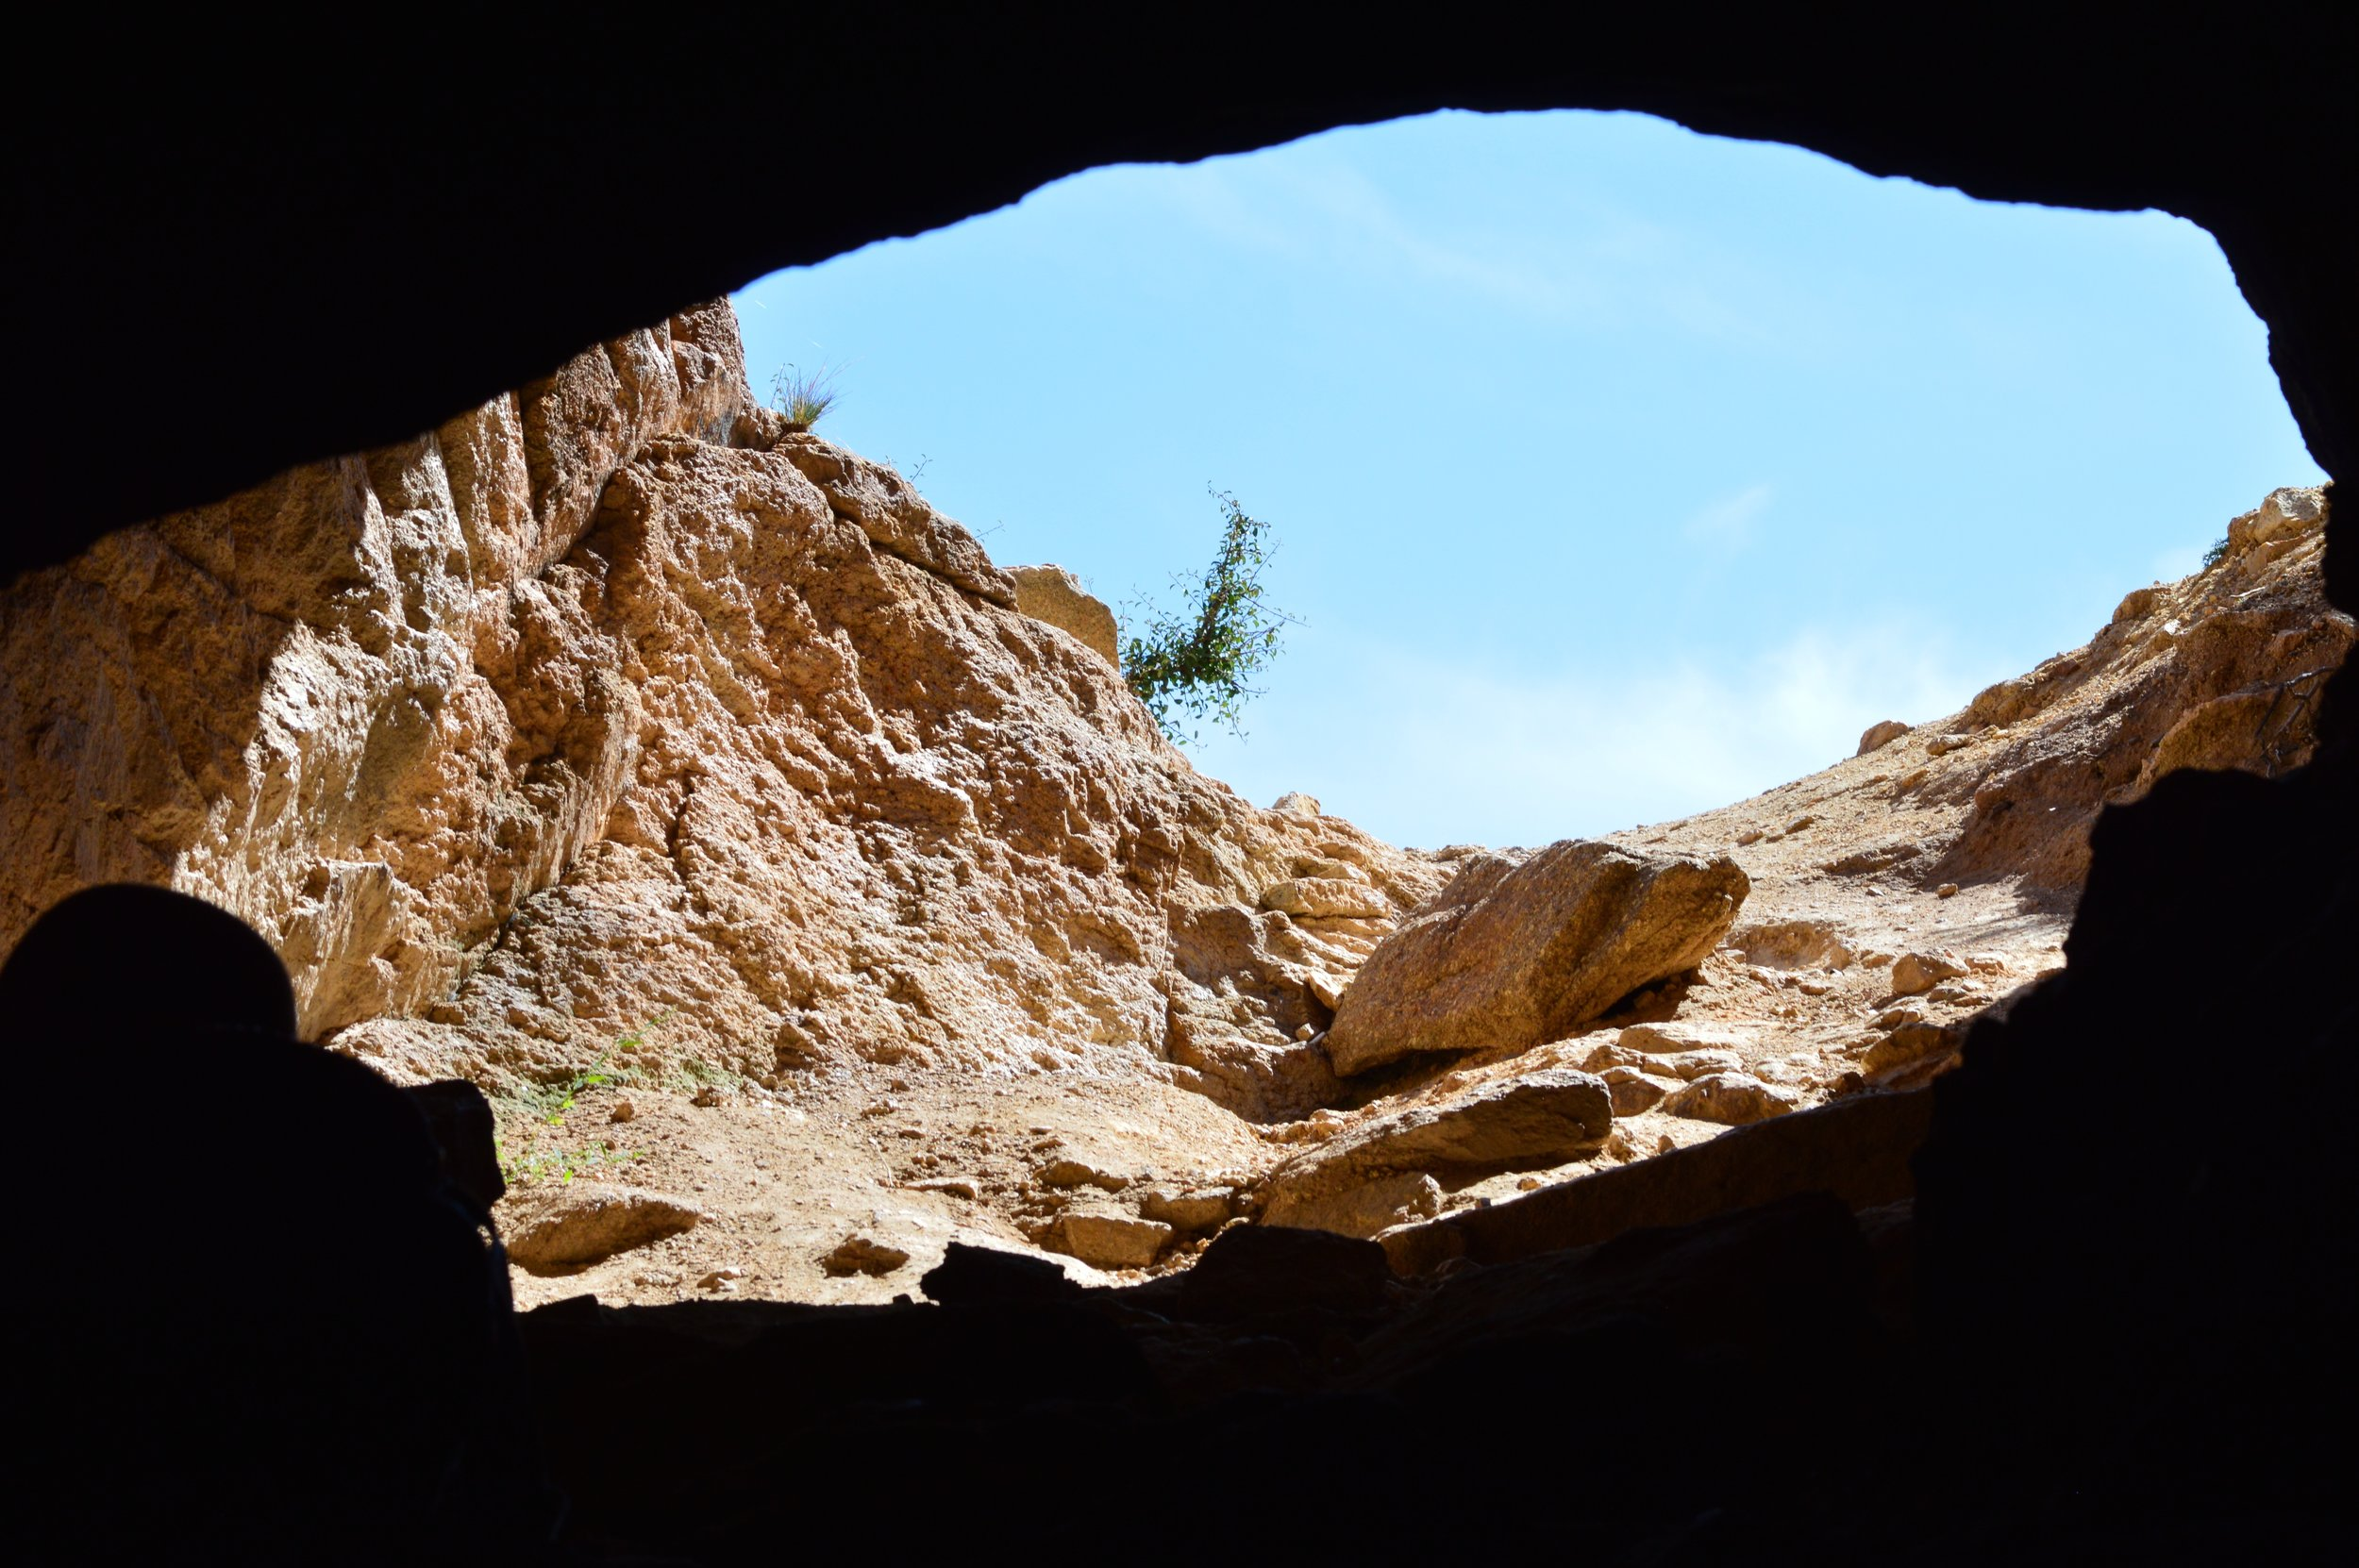 The small cave entrance as seen from inside